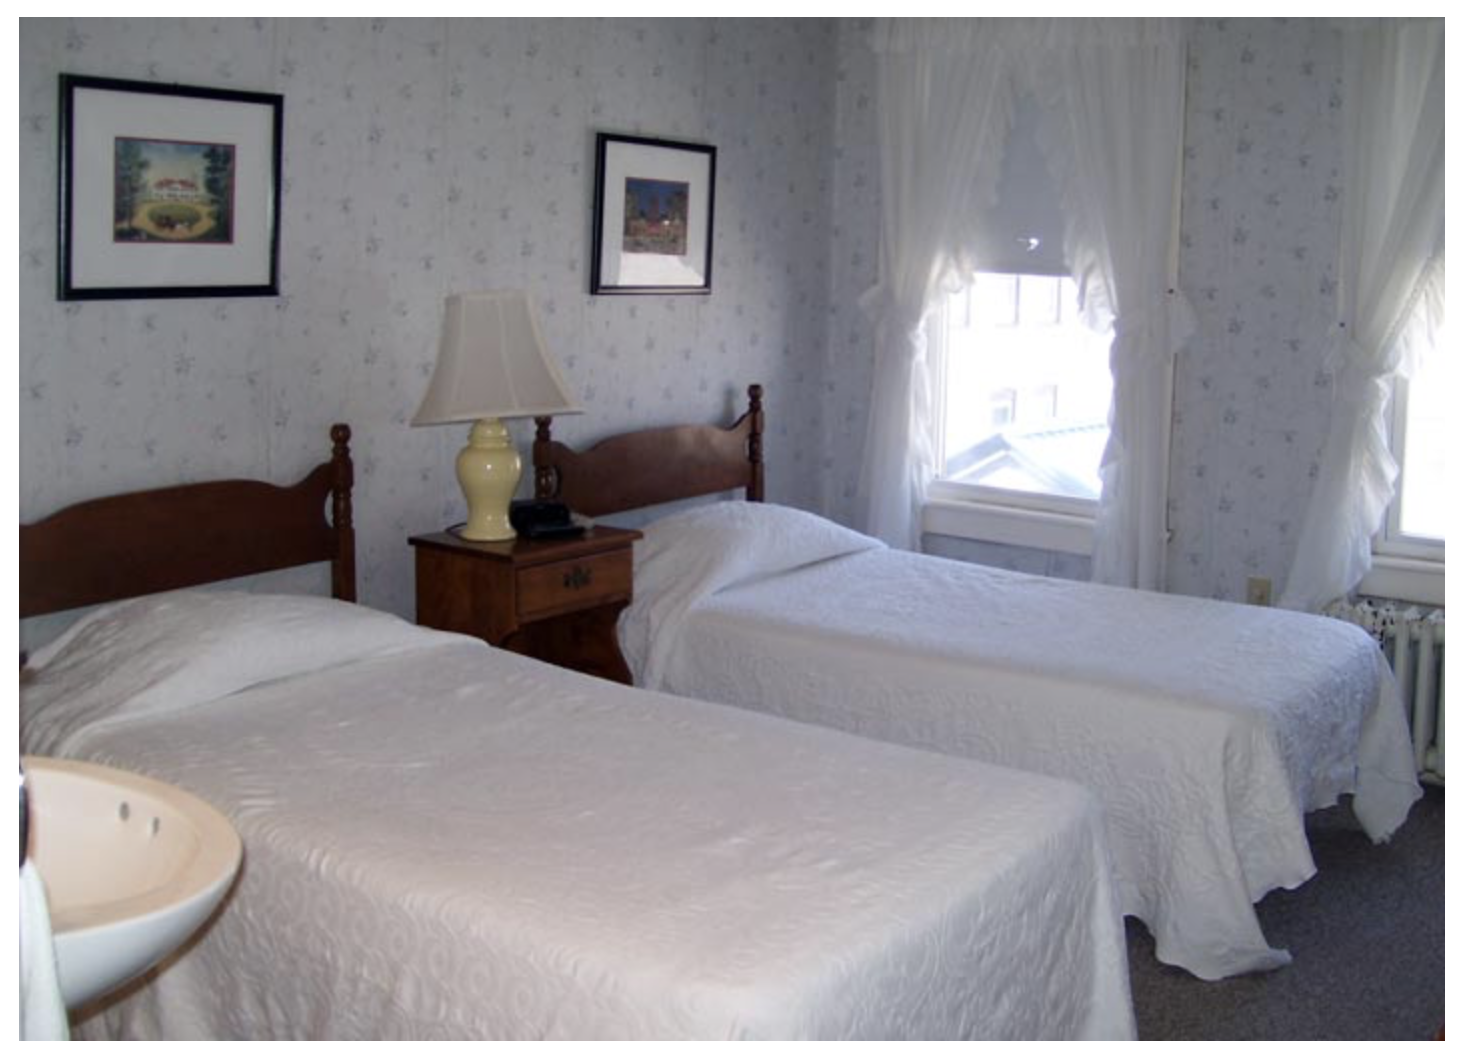 New Hampshire Hotel offers Historic Littleton NH Inn rooms